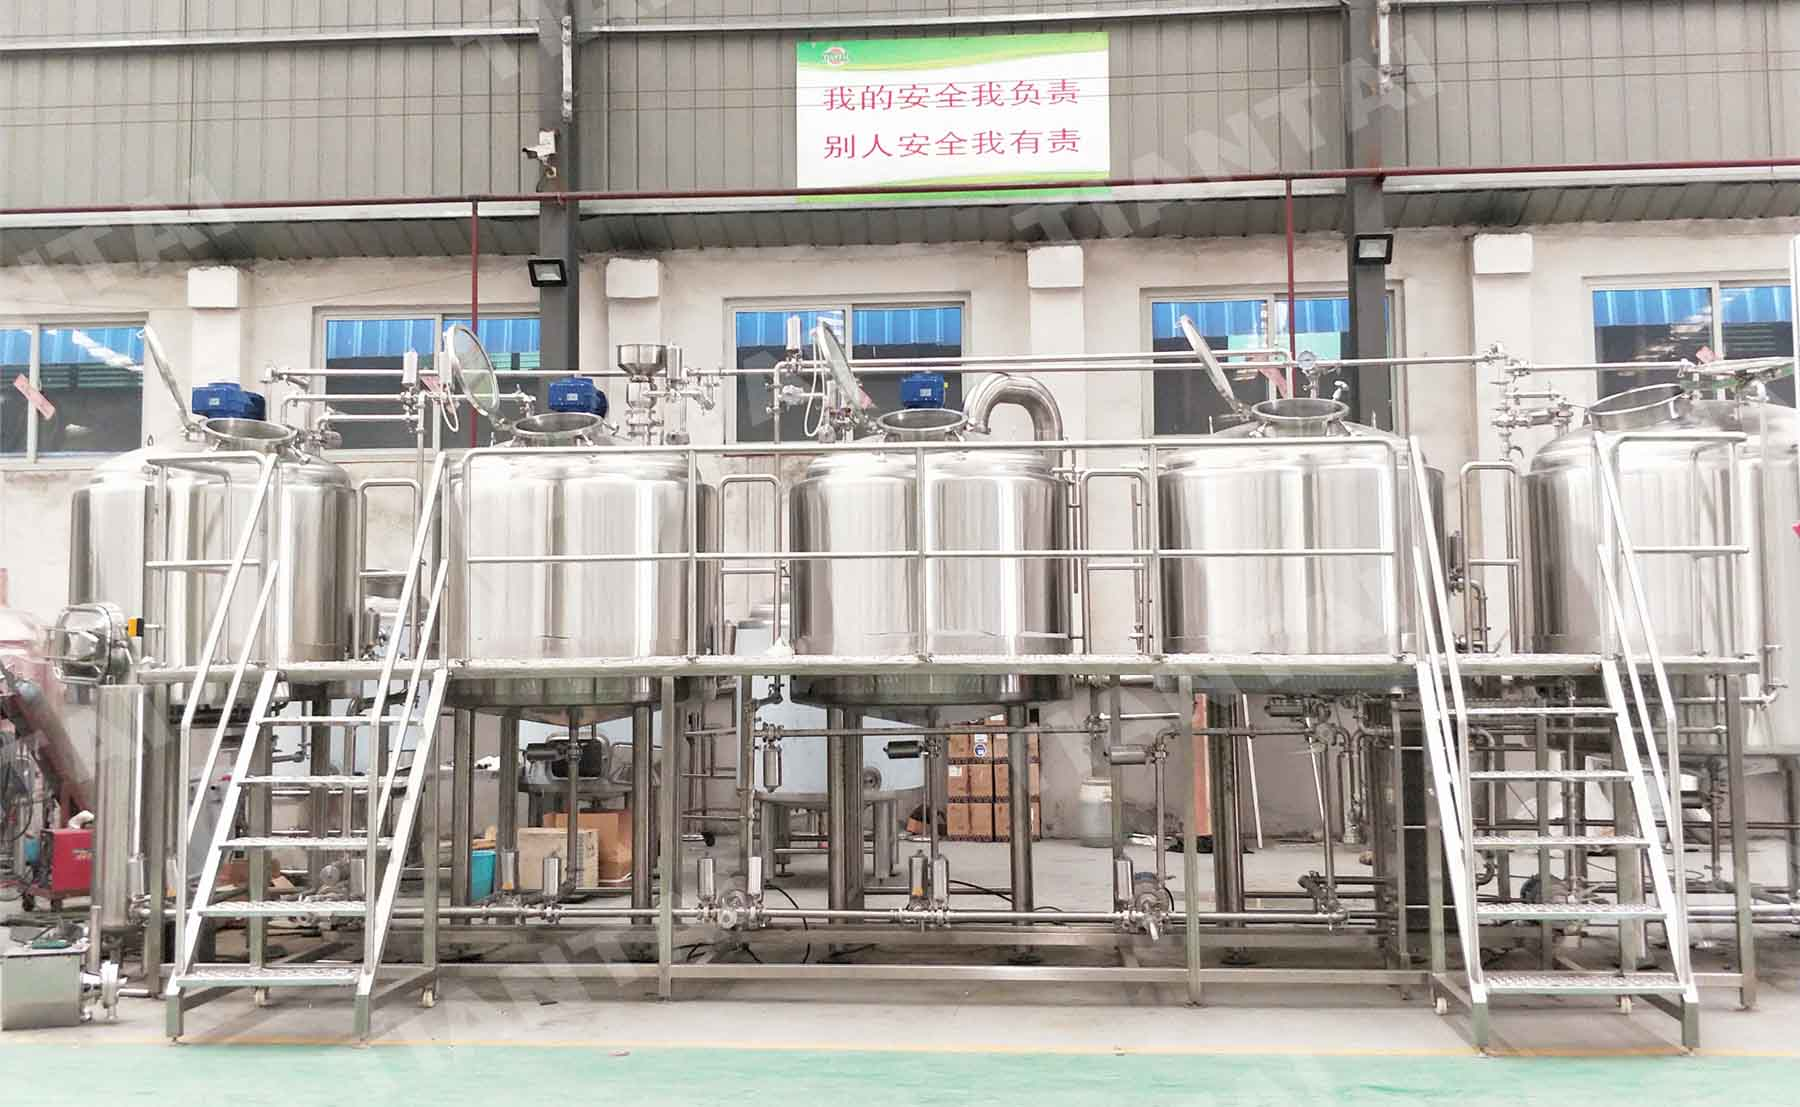 Korea 1000L 4 Vessel Brewhouse and Beer brewing equipment are shipped!